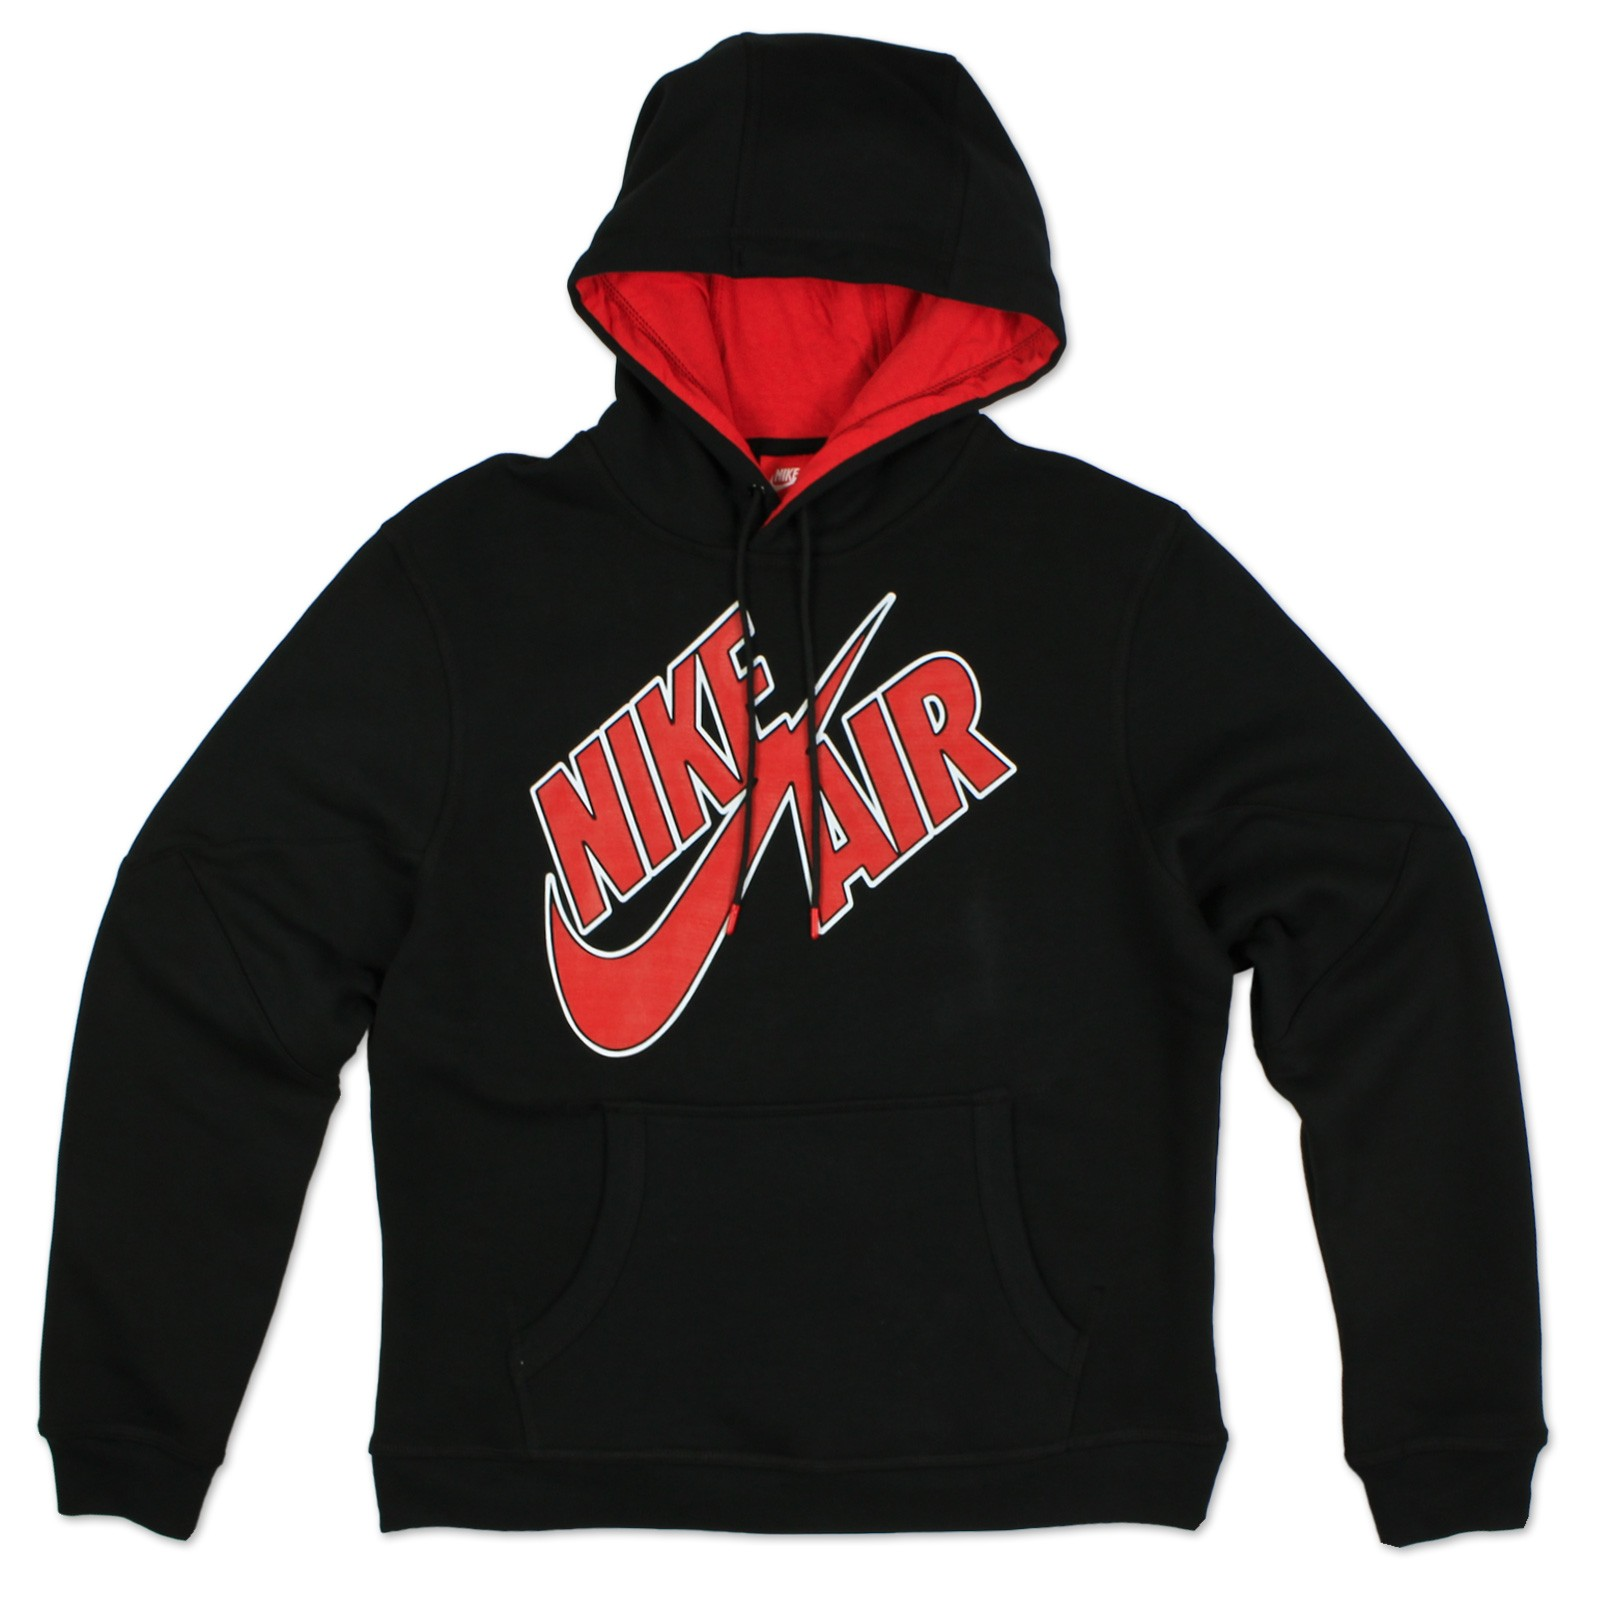 nike air max swoosh street urban kapuzenpulli hoody skater. Black Bedroom Furniture Sets. Home Design Ideas